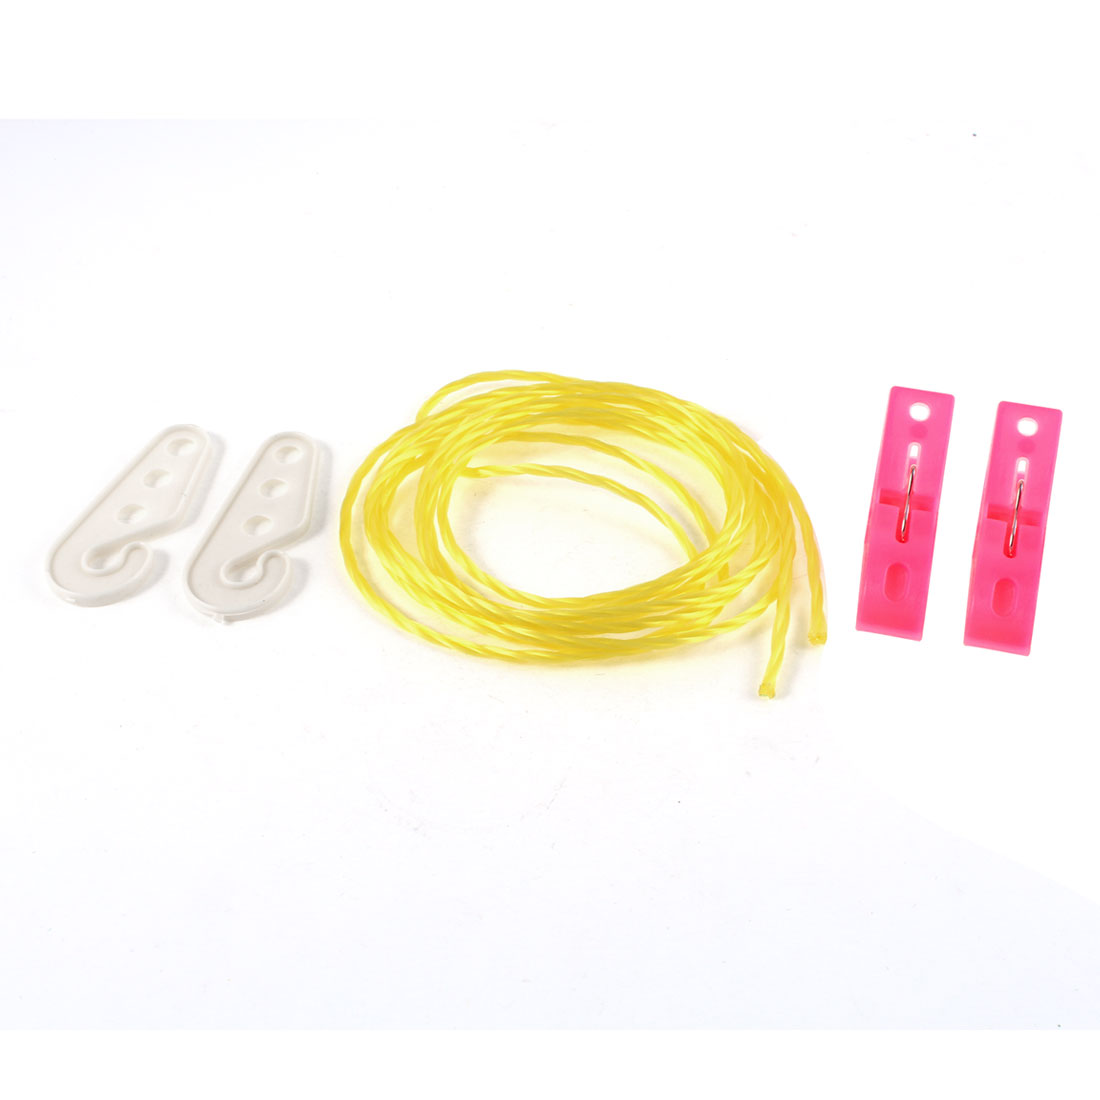 2M Long Yellow Twisted Nylon String Clothesline w 2 Pcs Clothes Pins